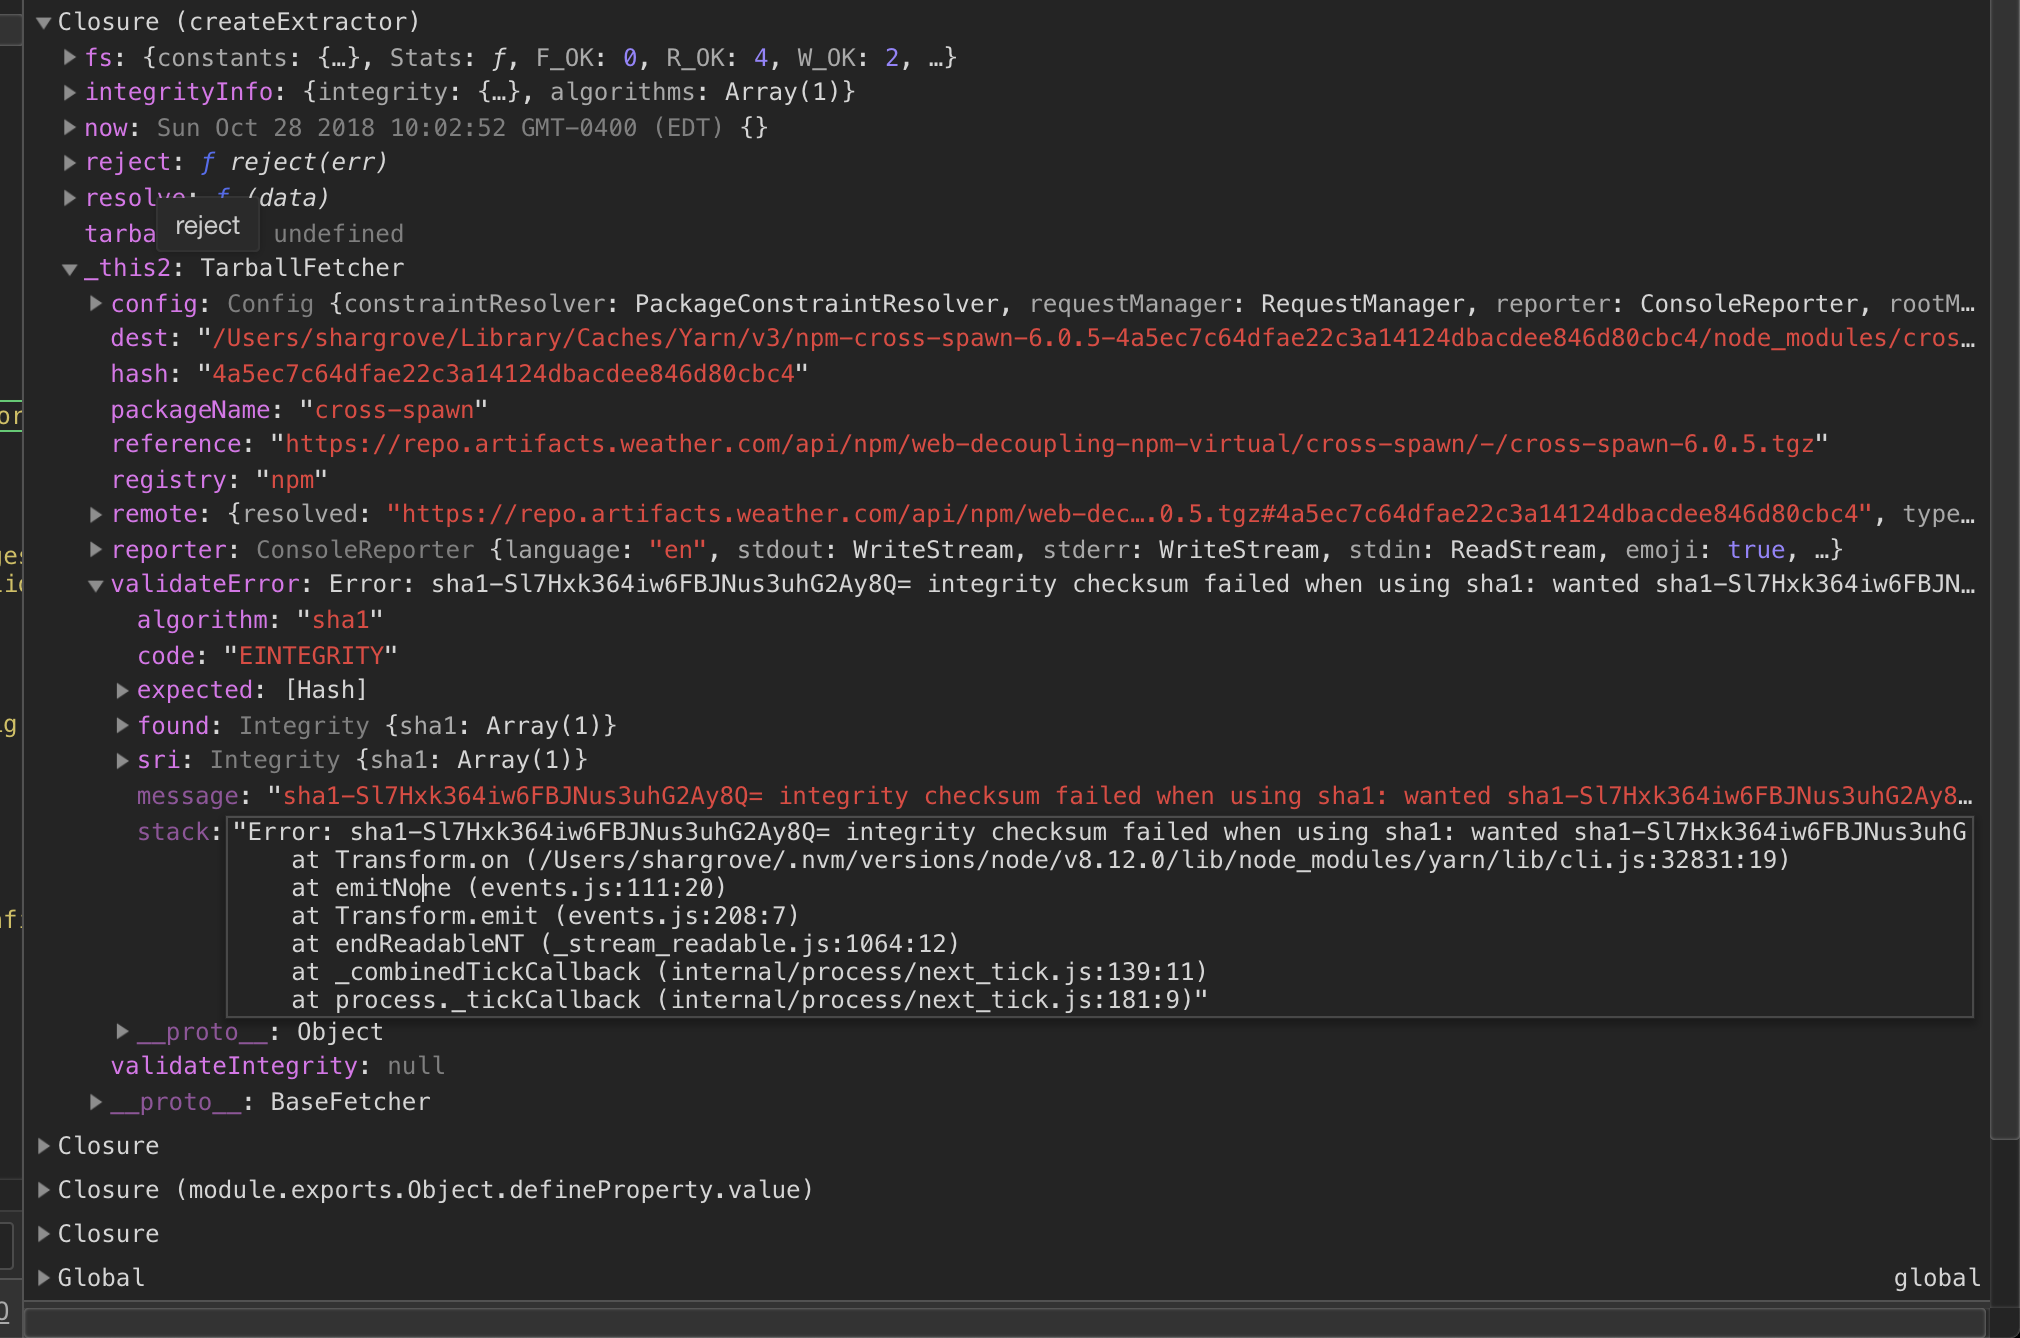 Extracting the tar content of undefined failed · Issue #6312